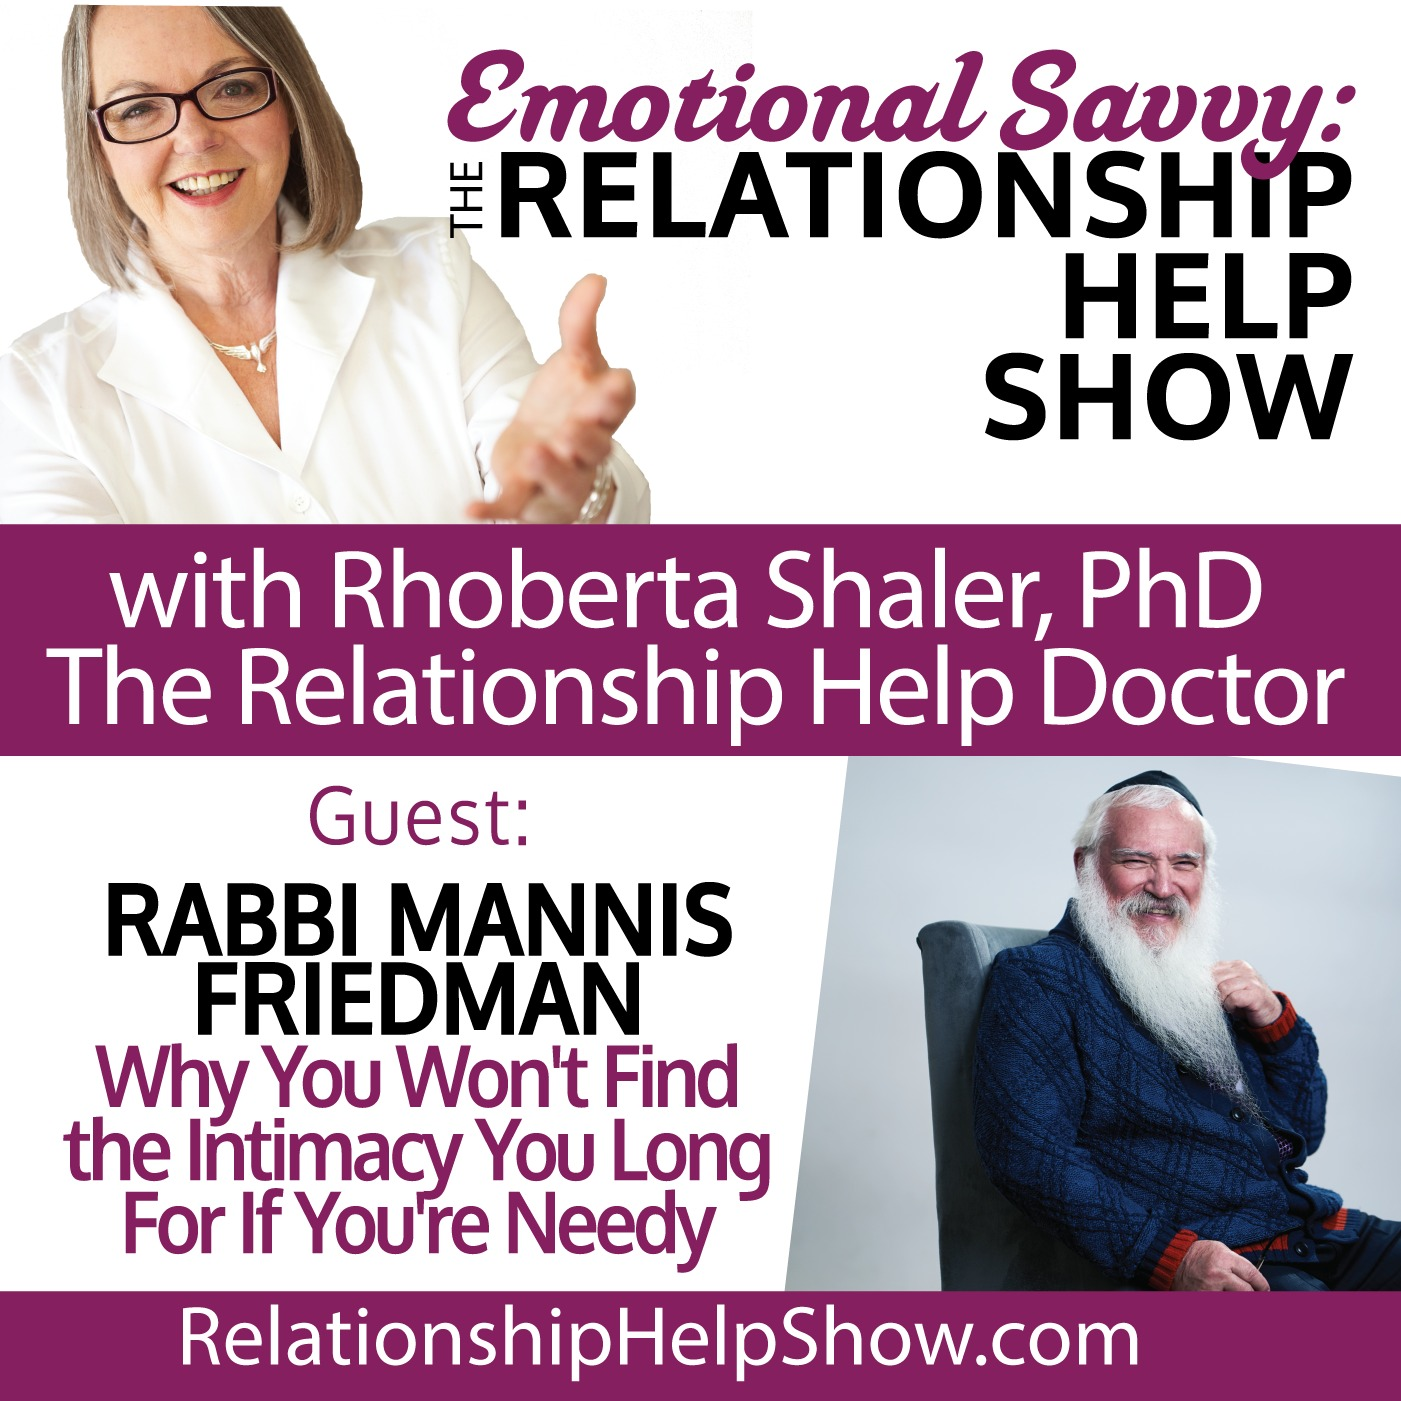 Why You Won't Find the Intimacy You Long for If You're Needy  GUEST: Rabbi Manis Friedman